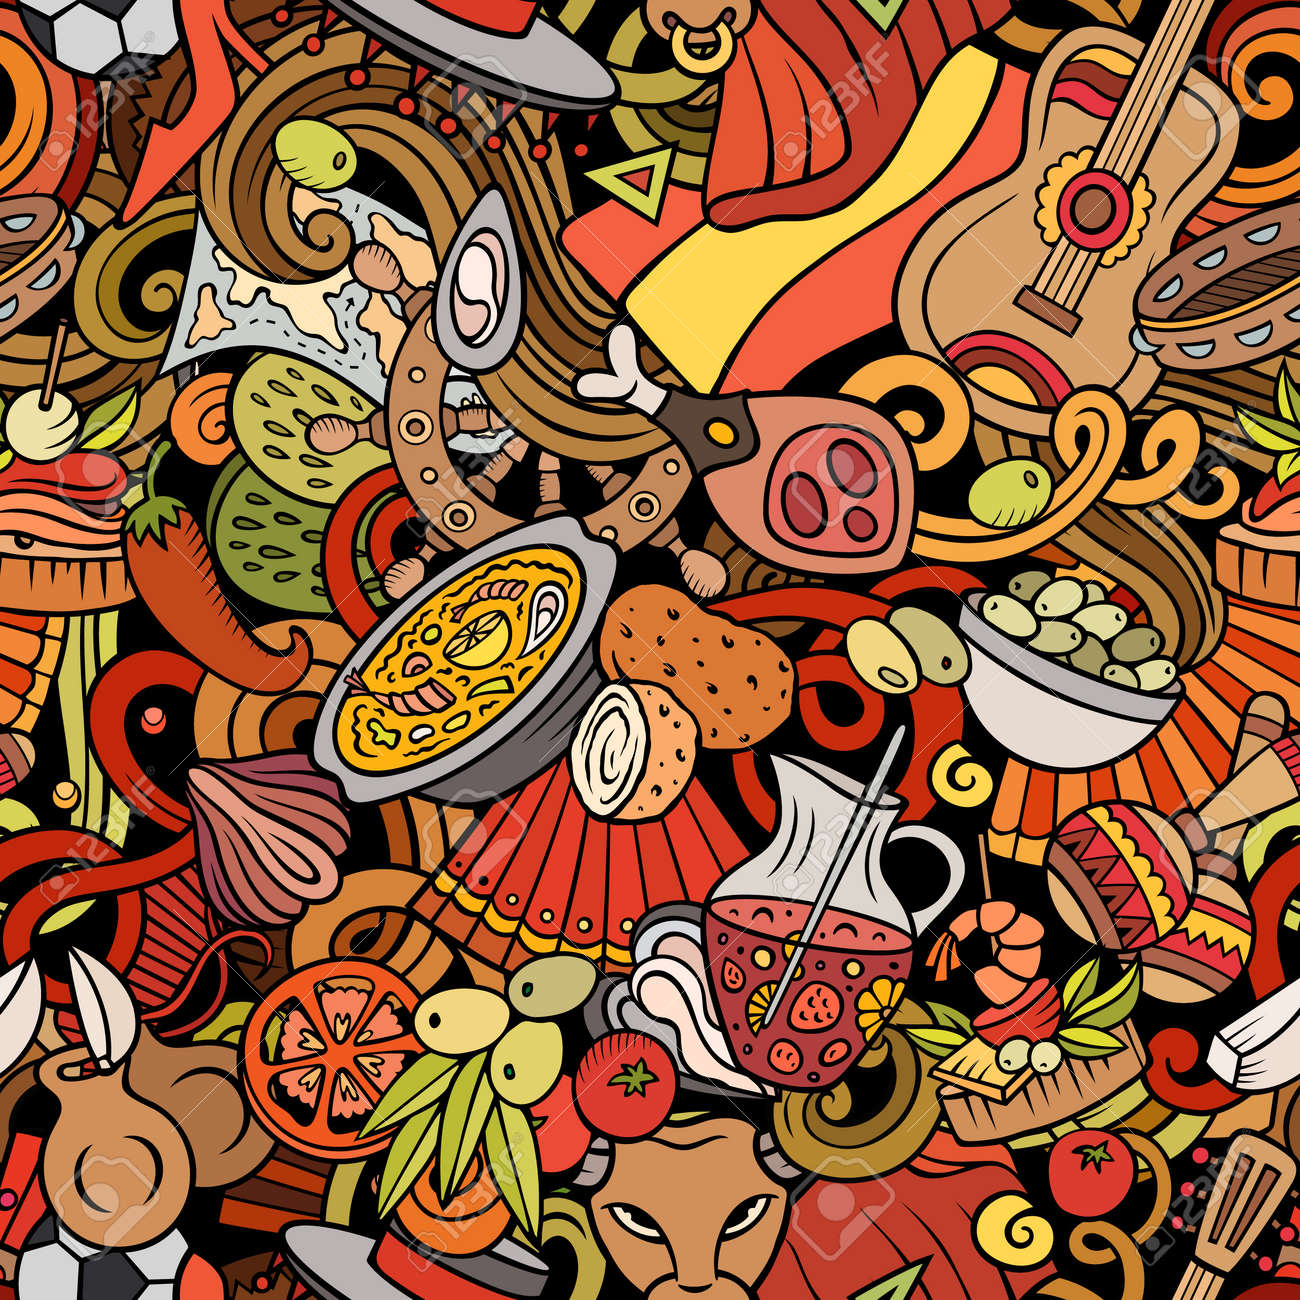 Cartoon doodles Spain seamless pattern. Backdrop with Spanish culture symbols and items. Colorful detailed, with lots of objects background for print on fabric, textile, phone cases, wrapping paper. - 168446730